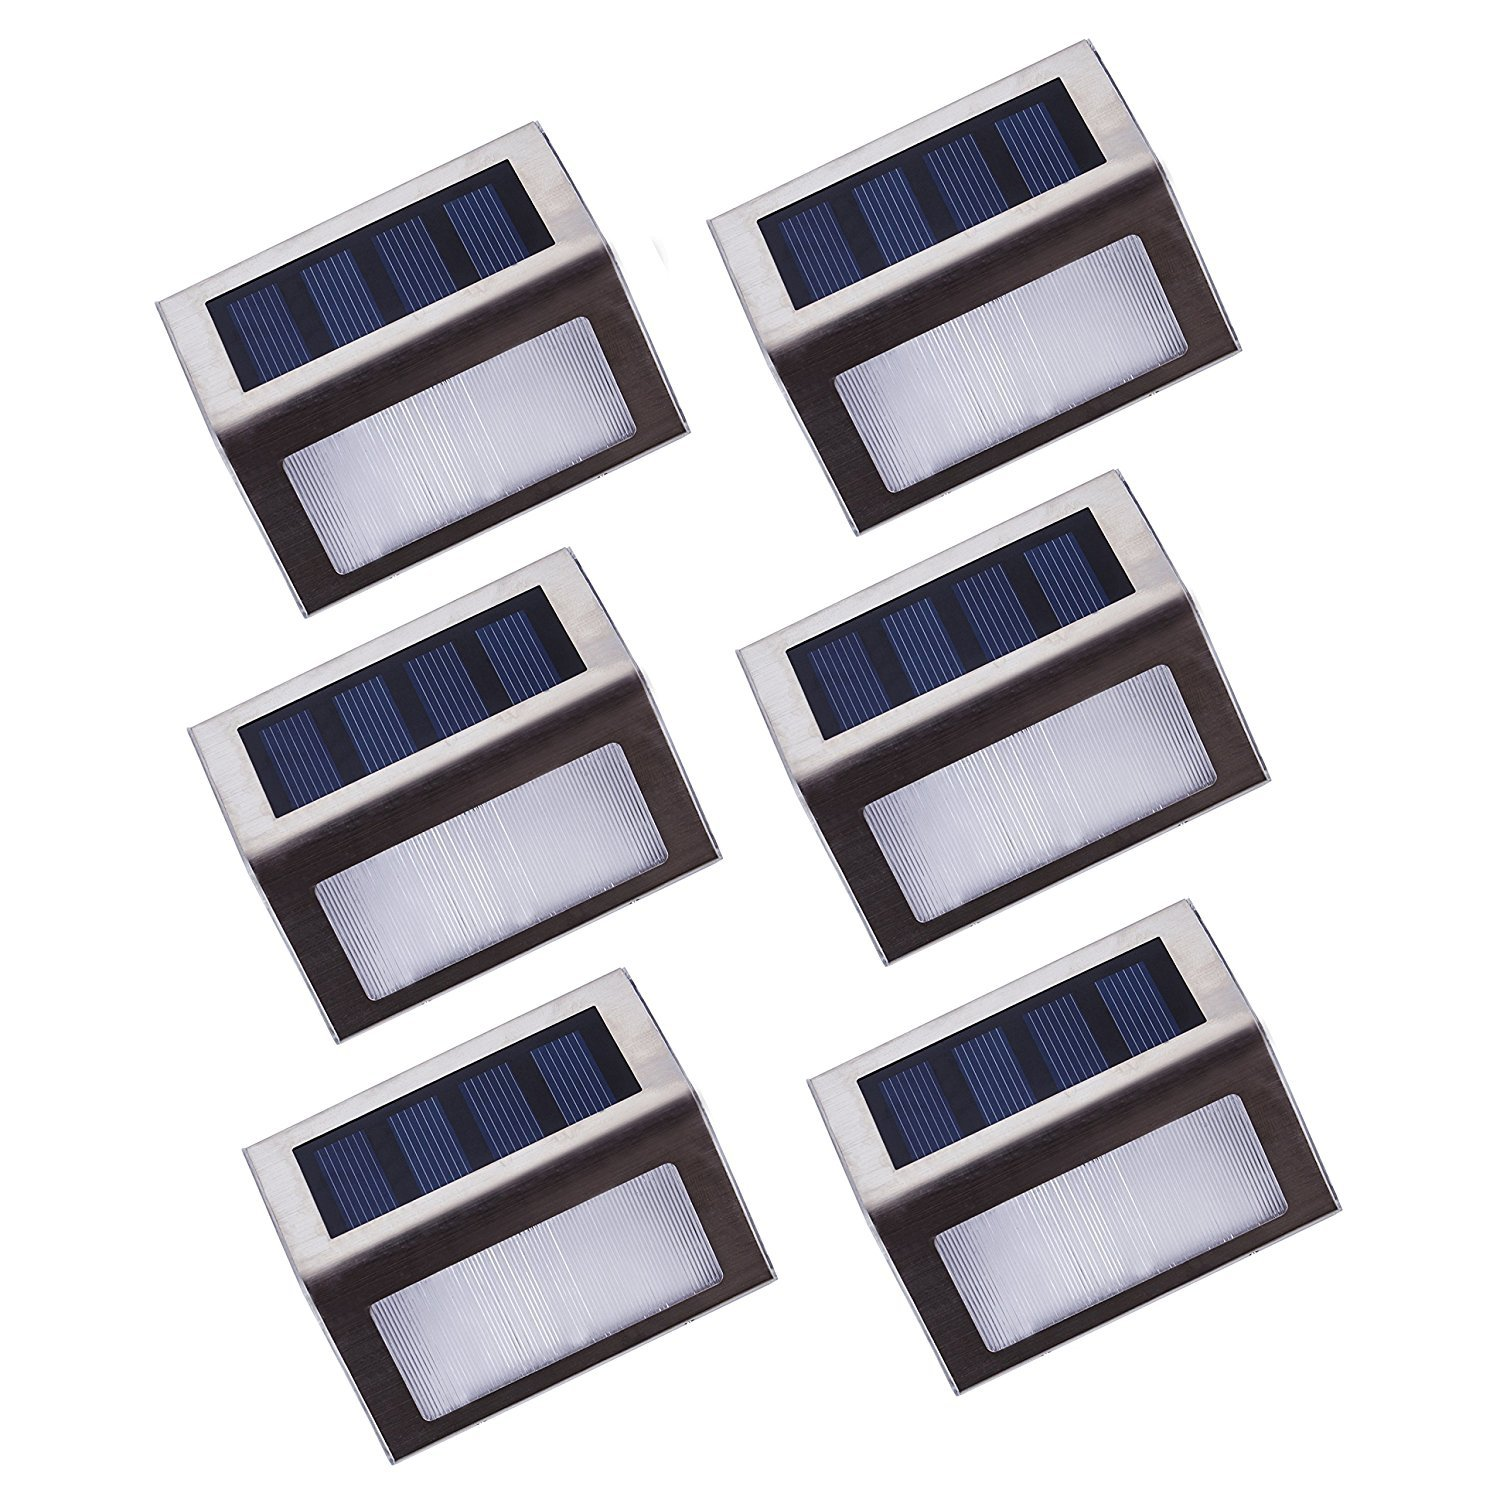 [Upgraded 3 LED] HKYH Newest 6 Pack 3 LED Solar Bright Step Light Stairs Pathway Deck Garden Lamps Stainless Steel Wall Yard Outdoor Illuminates Patio Lamps by HKYH